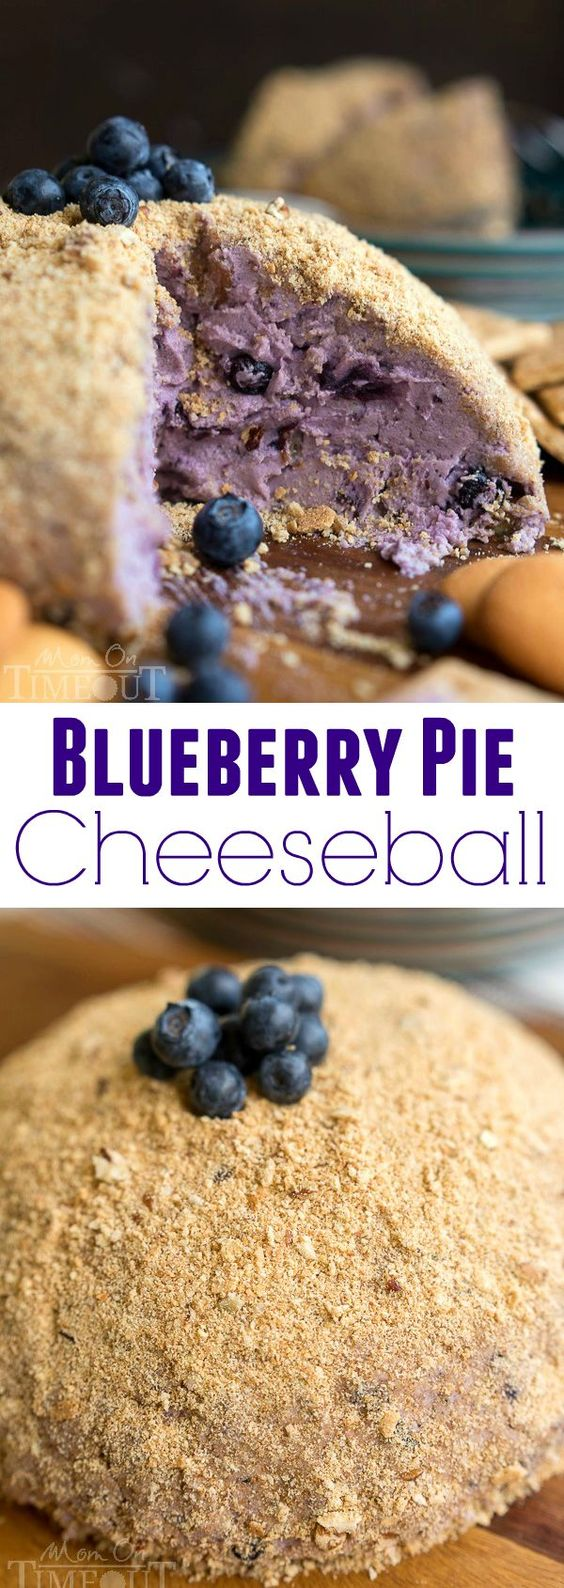 This Blueberry Pie Cheese Ball tastes just like a blueberry cheesecake ...